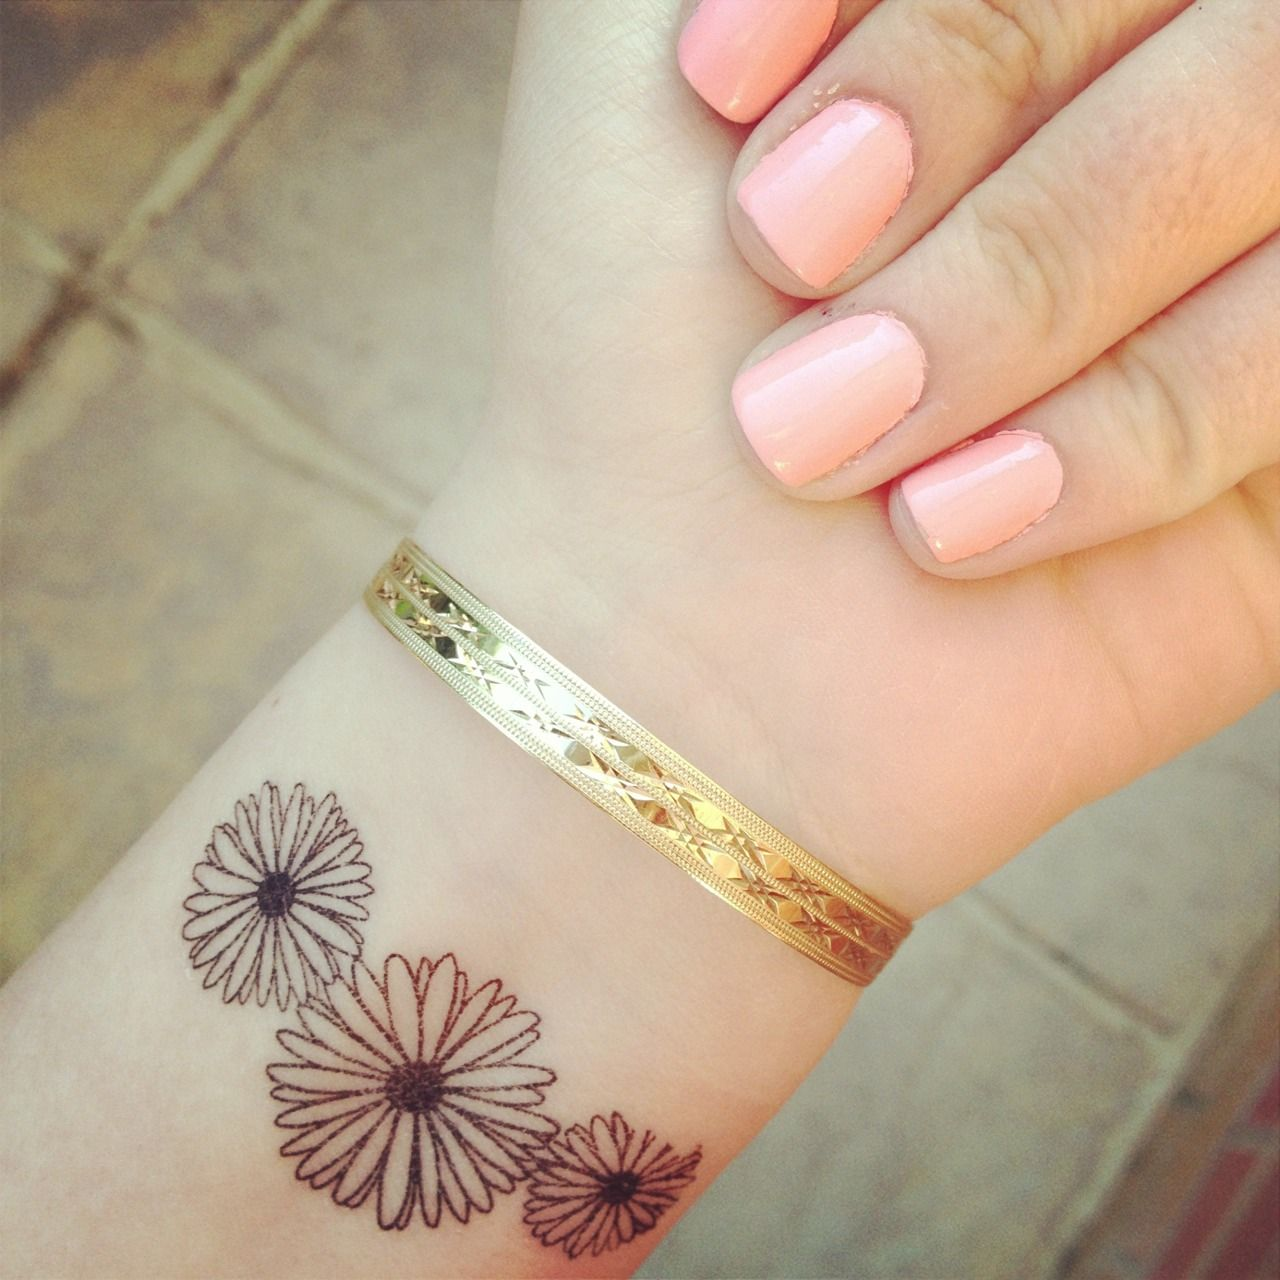 10 beautiful flower tattoos for your wrist wrist tattoos tattoo 10 beautiful flower tattoos for your wrist pretty designs izmirmasajfo Image collections